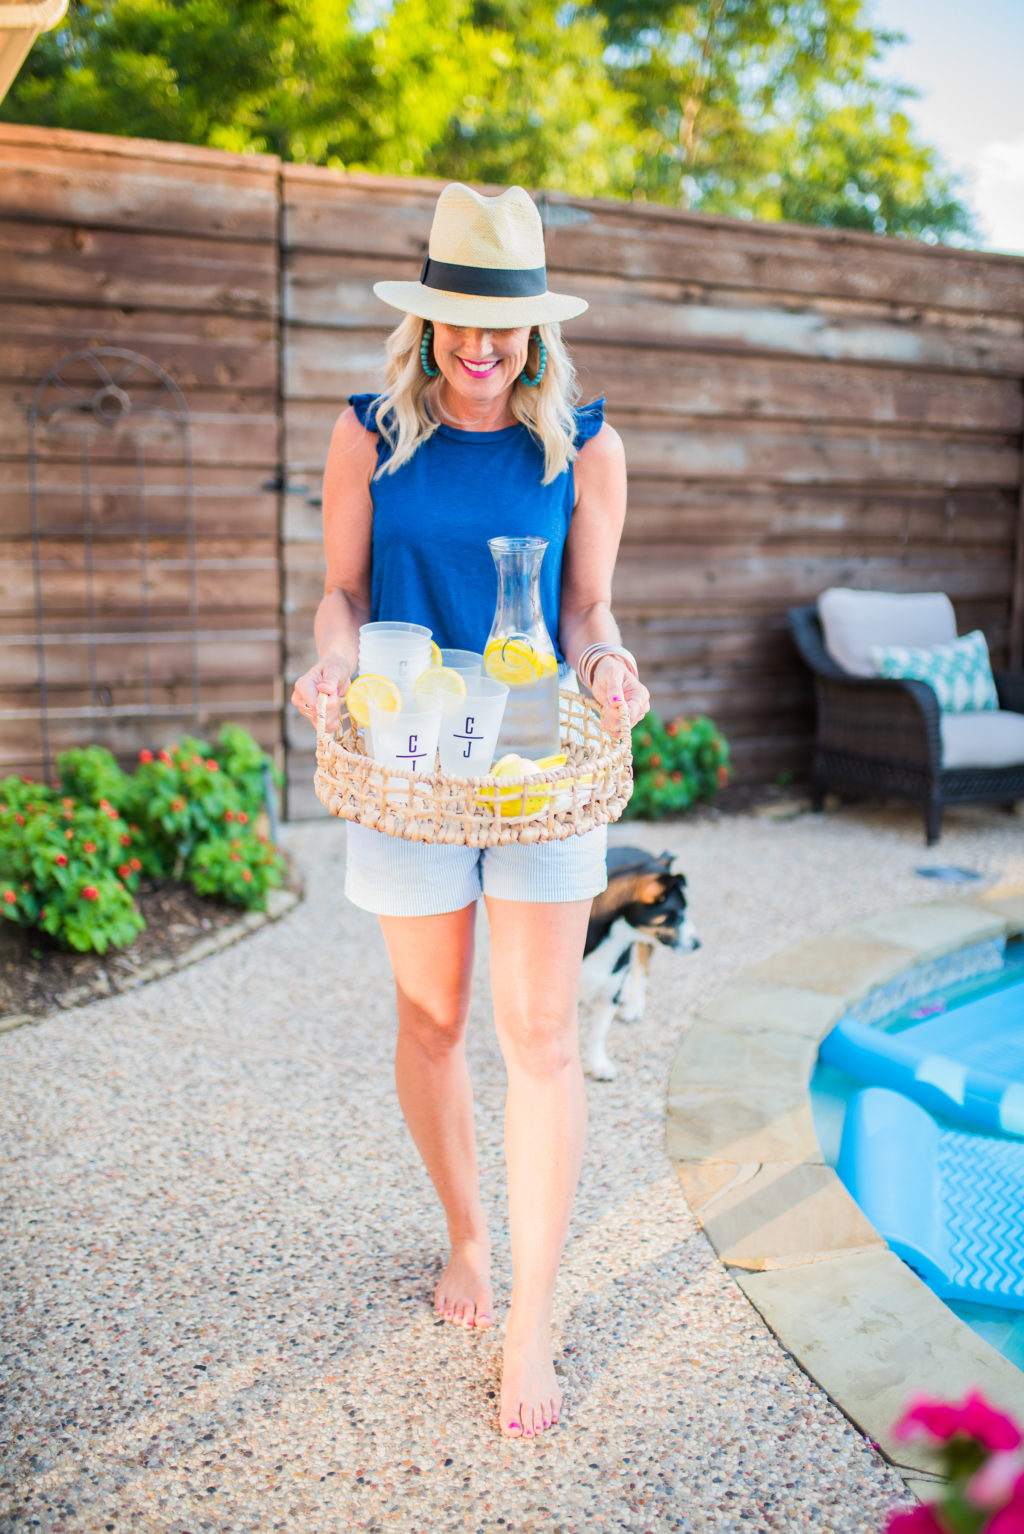 mom serving drinks by pool behind privacy fence in backyard